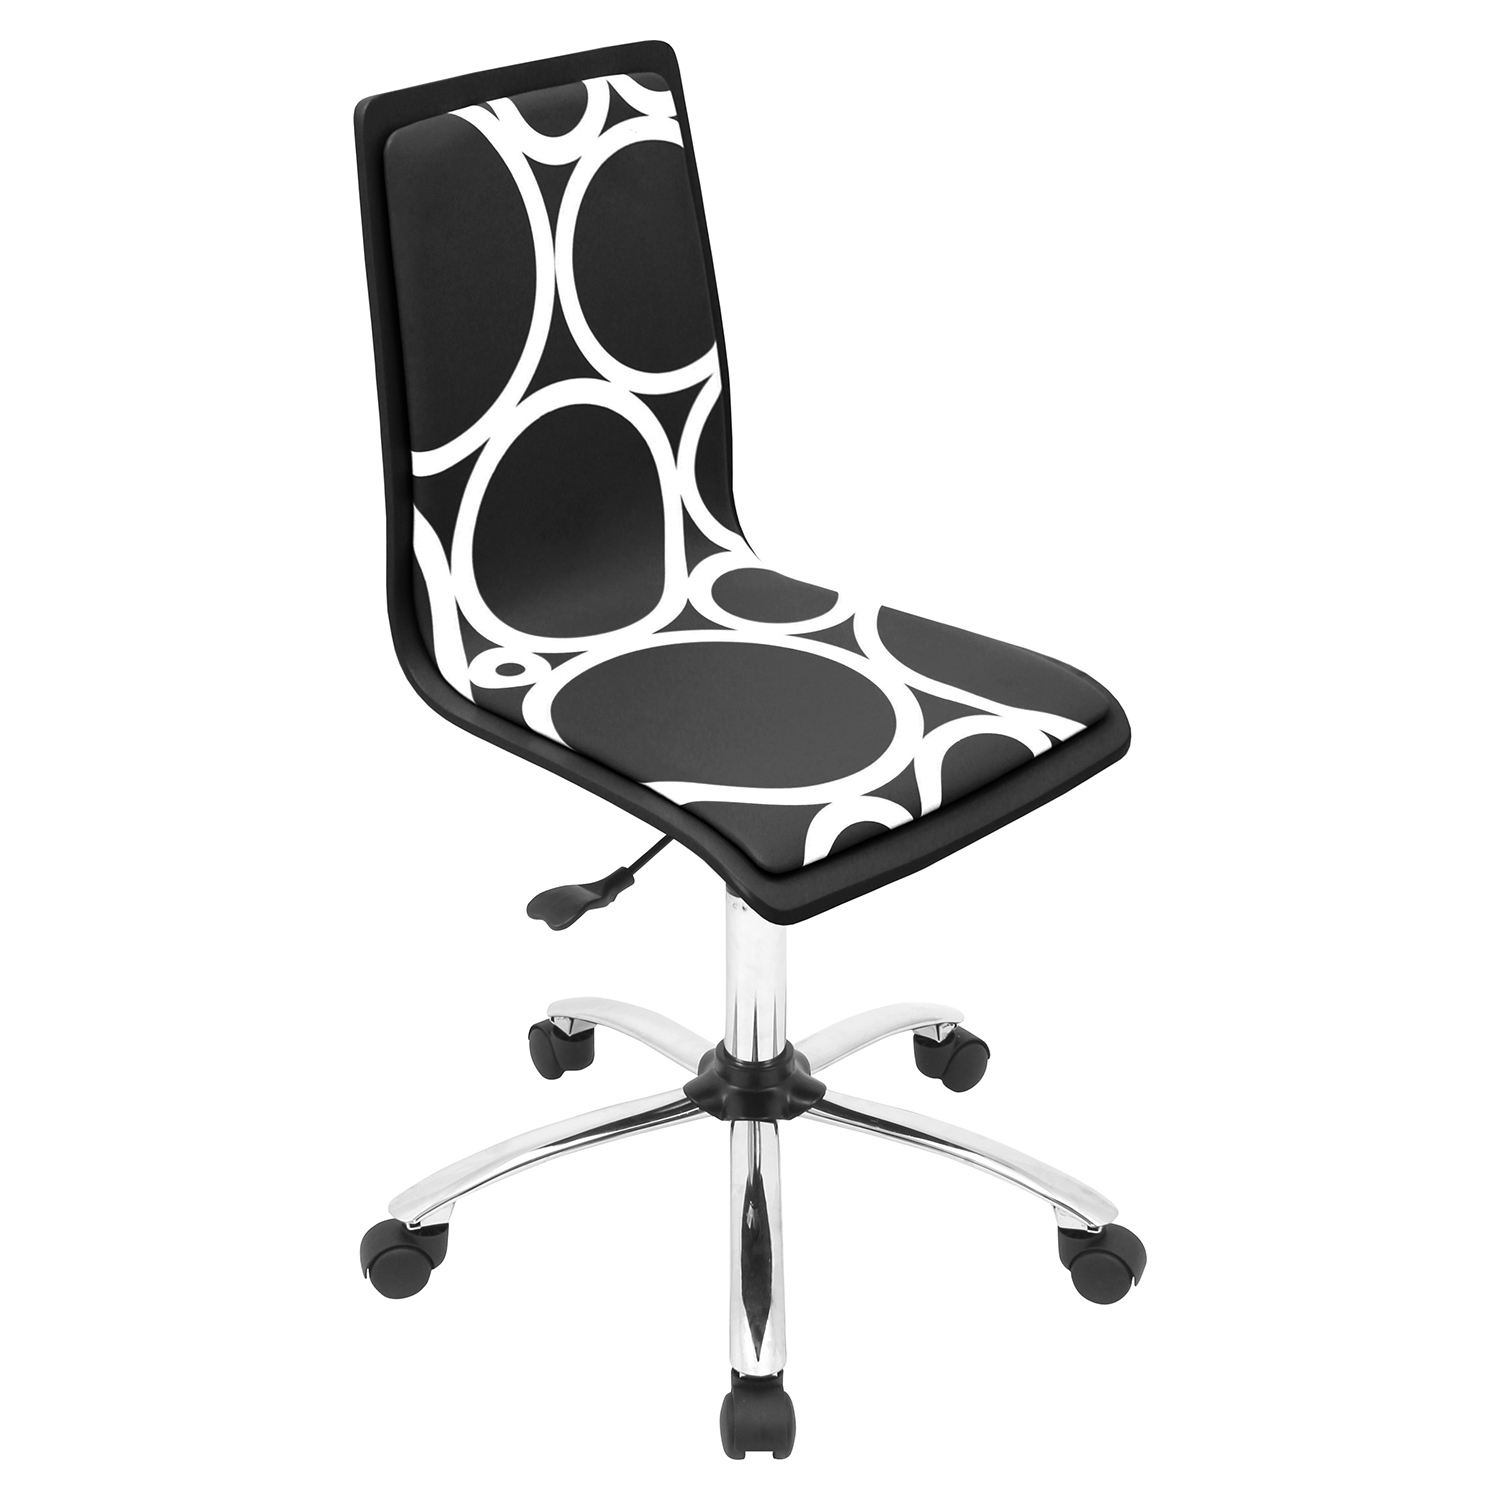 Printed Height Adjustable Office Chair - Swivel, Black Circles